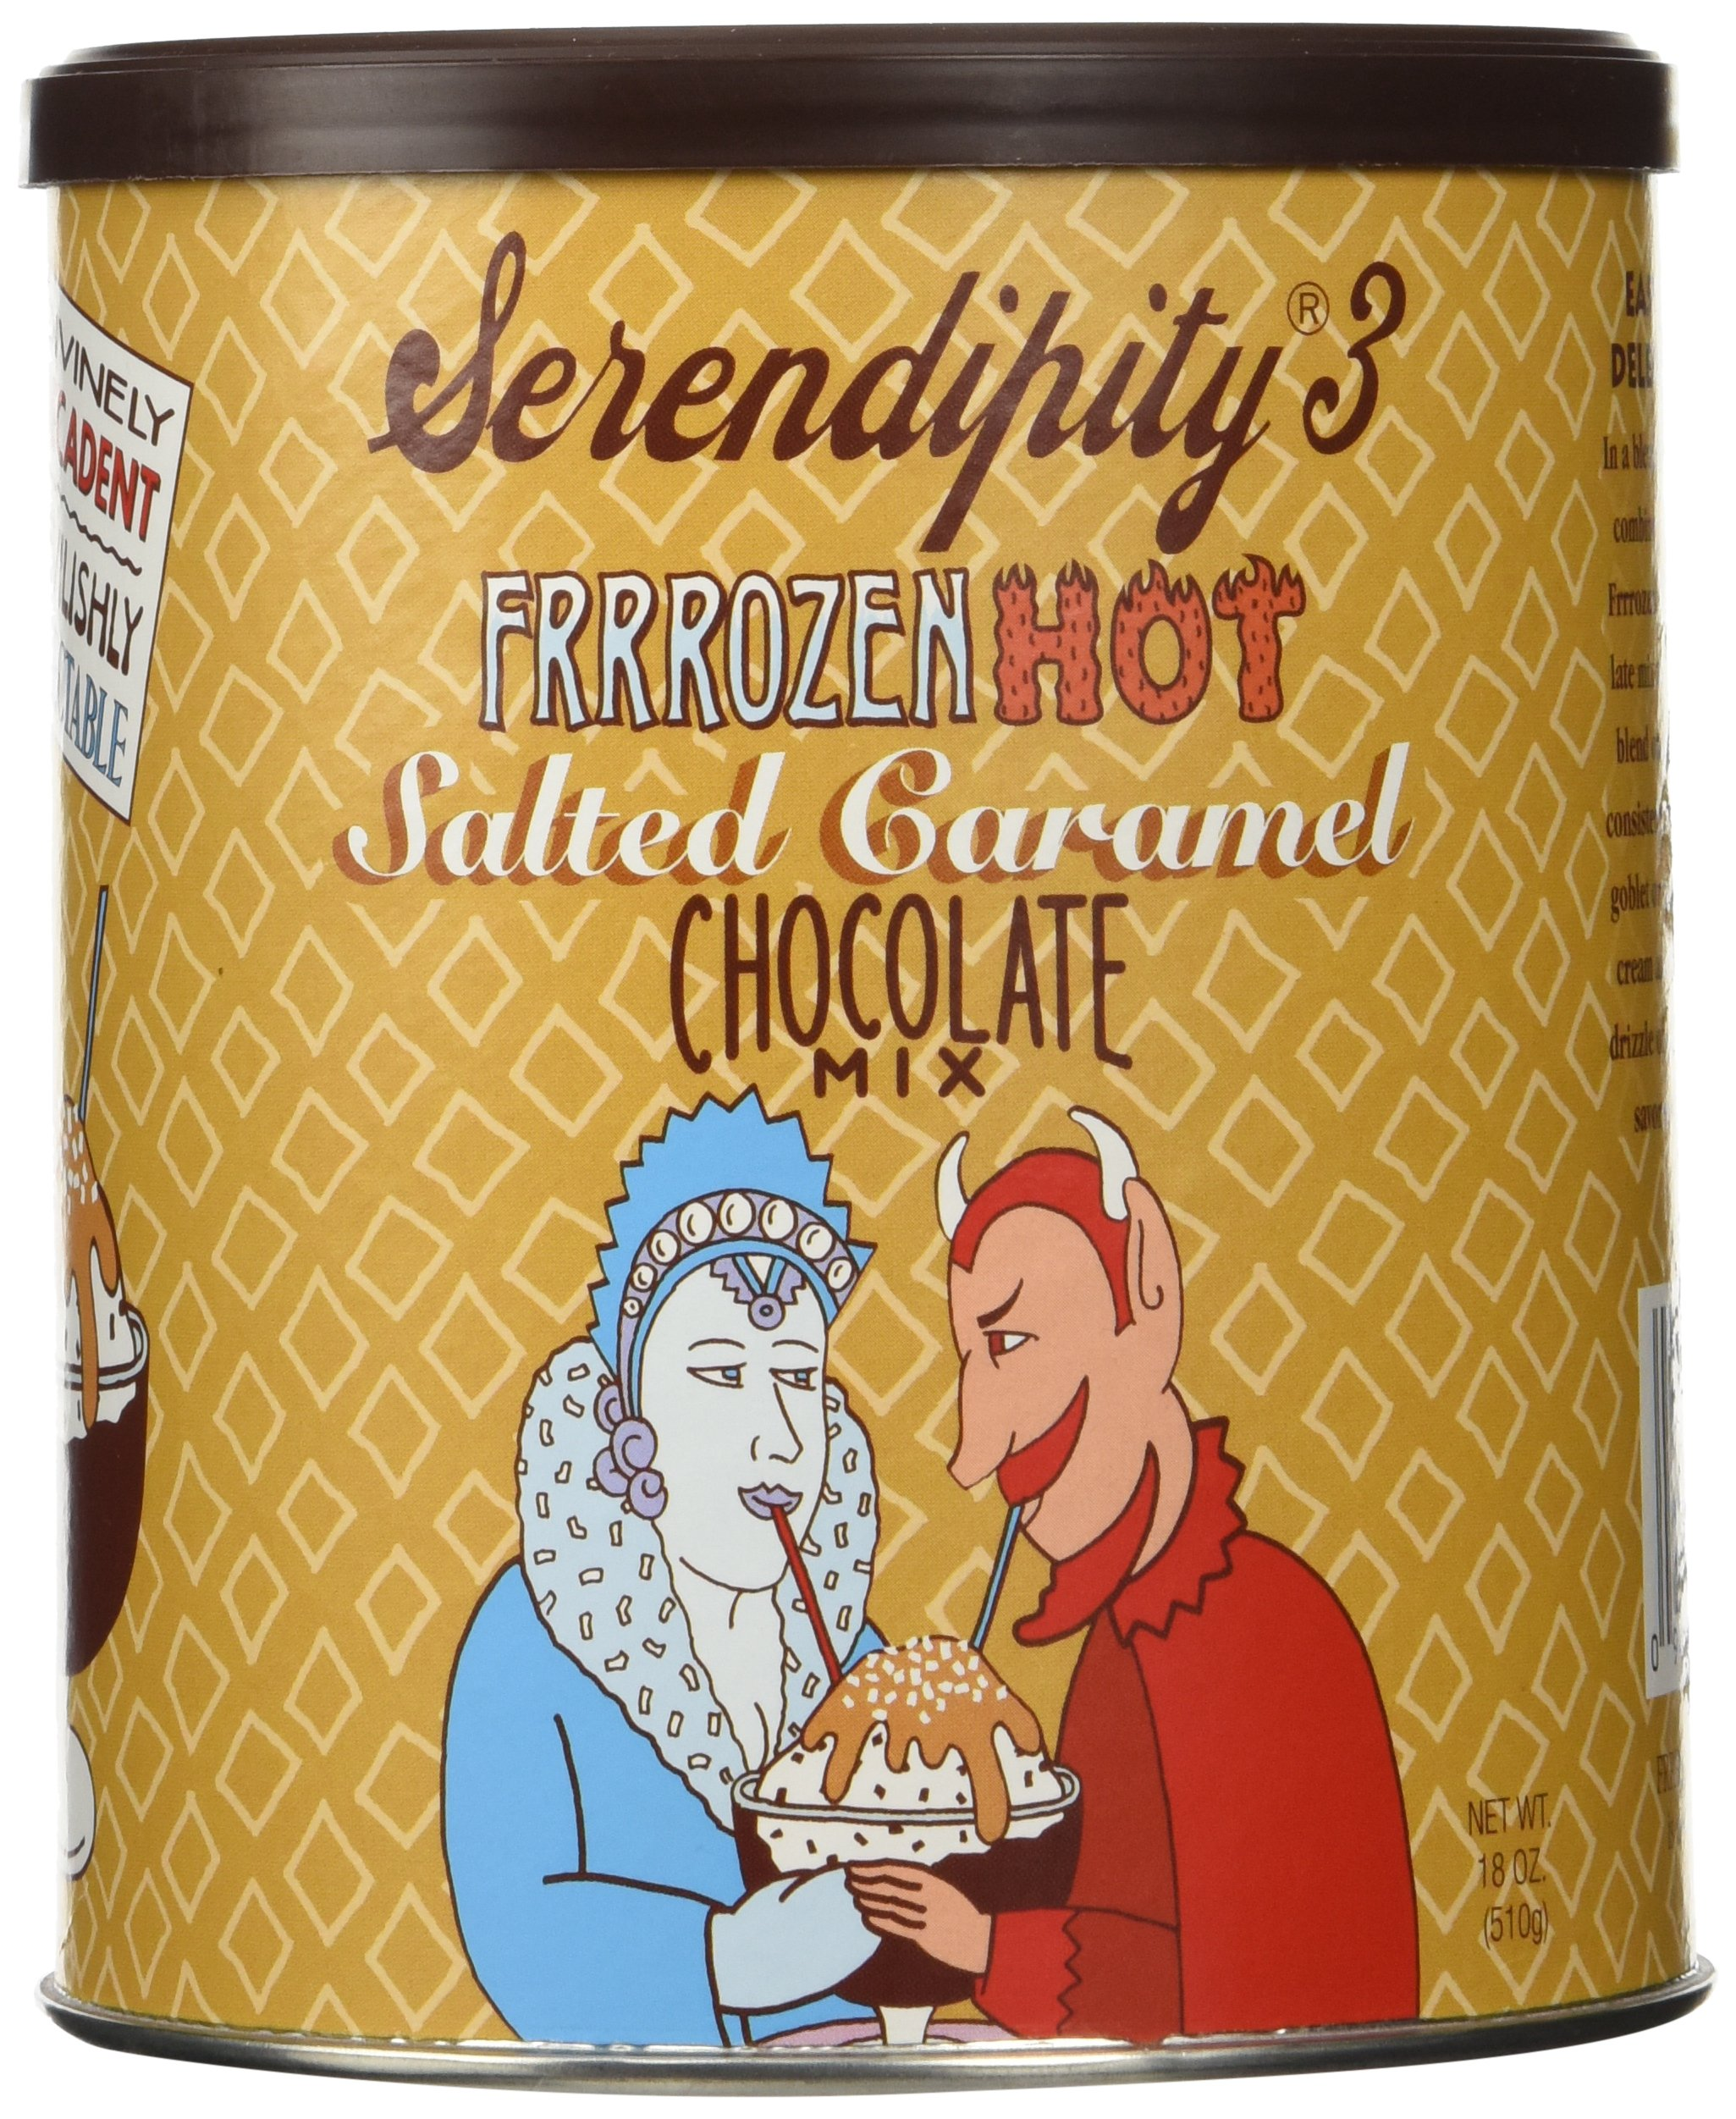 Serendipity 3 Frrrozen Hot Salt Caramel Choc Mix 18 oz. Can